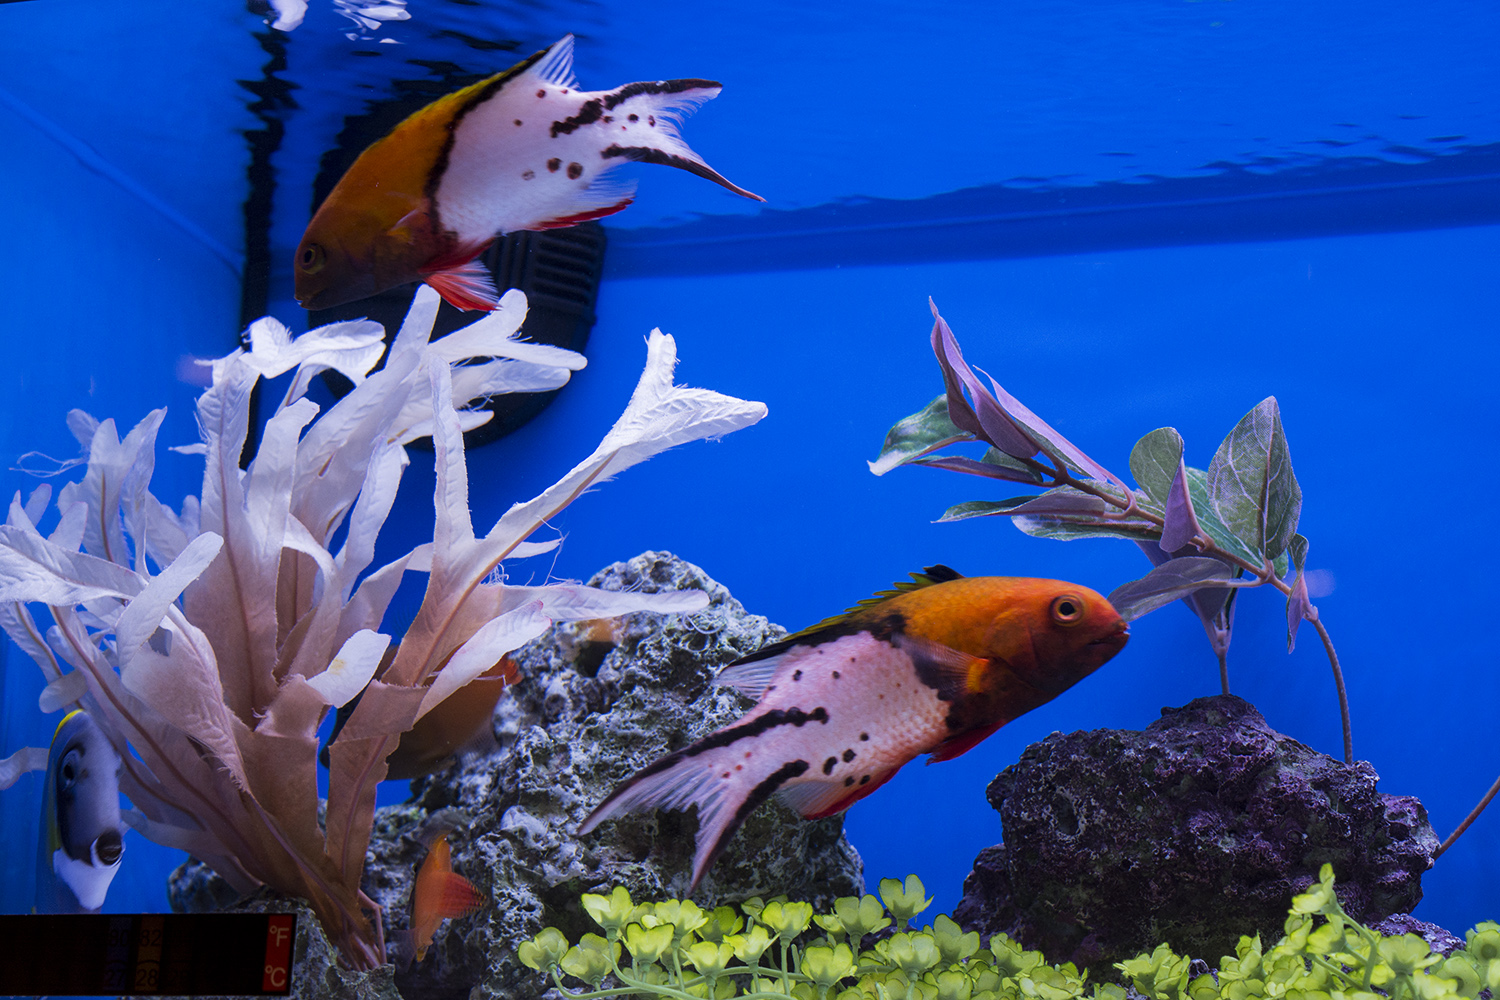 Freshwater aquarium fish orlando - A Pair Of Lyretail Hogfish Bodianus Anthioides Showing Off Their Namesake Caudal Fins In